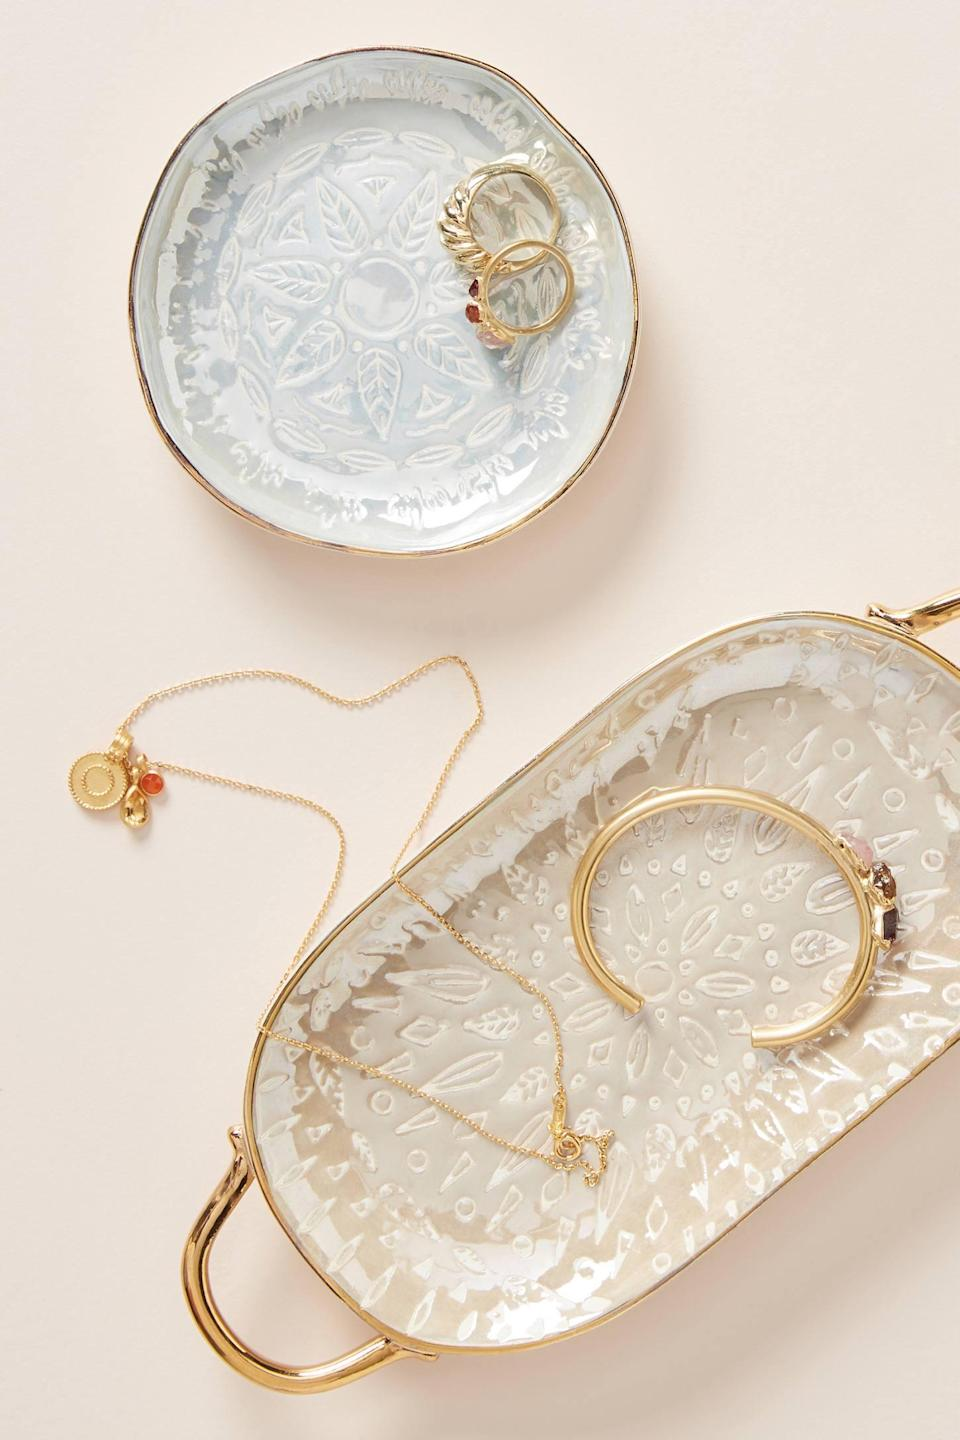 "<p><strong>Anthropologie</strong></p><p>anthropologie.com</p><p><strong>Out of Stock</strong></p><p><a href=""https://www.anthropologie.com/shop/lucia-trinket-dish"" rel=""nofollow noopener"" target=""_blank"" data-ylk=""slk:SHOP NOW"" class=""link rapid-noclick-resp"">SHOP NOW</a></p><p>Now she can keep all of the <a href=""https://www.womansday.com/style/fashion/a54387/mistakes-ruining-your-jewelry/"" rel=""nofollow noopener"" target=""_blank"" data-ylk=""slk:fine jewelry"" class=""link rapid-noclick-resp"">fine jewelry</a> you've given her over the years on these stylish hand-painted dishes.</p>"